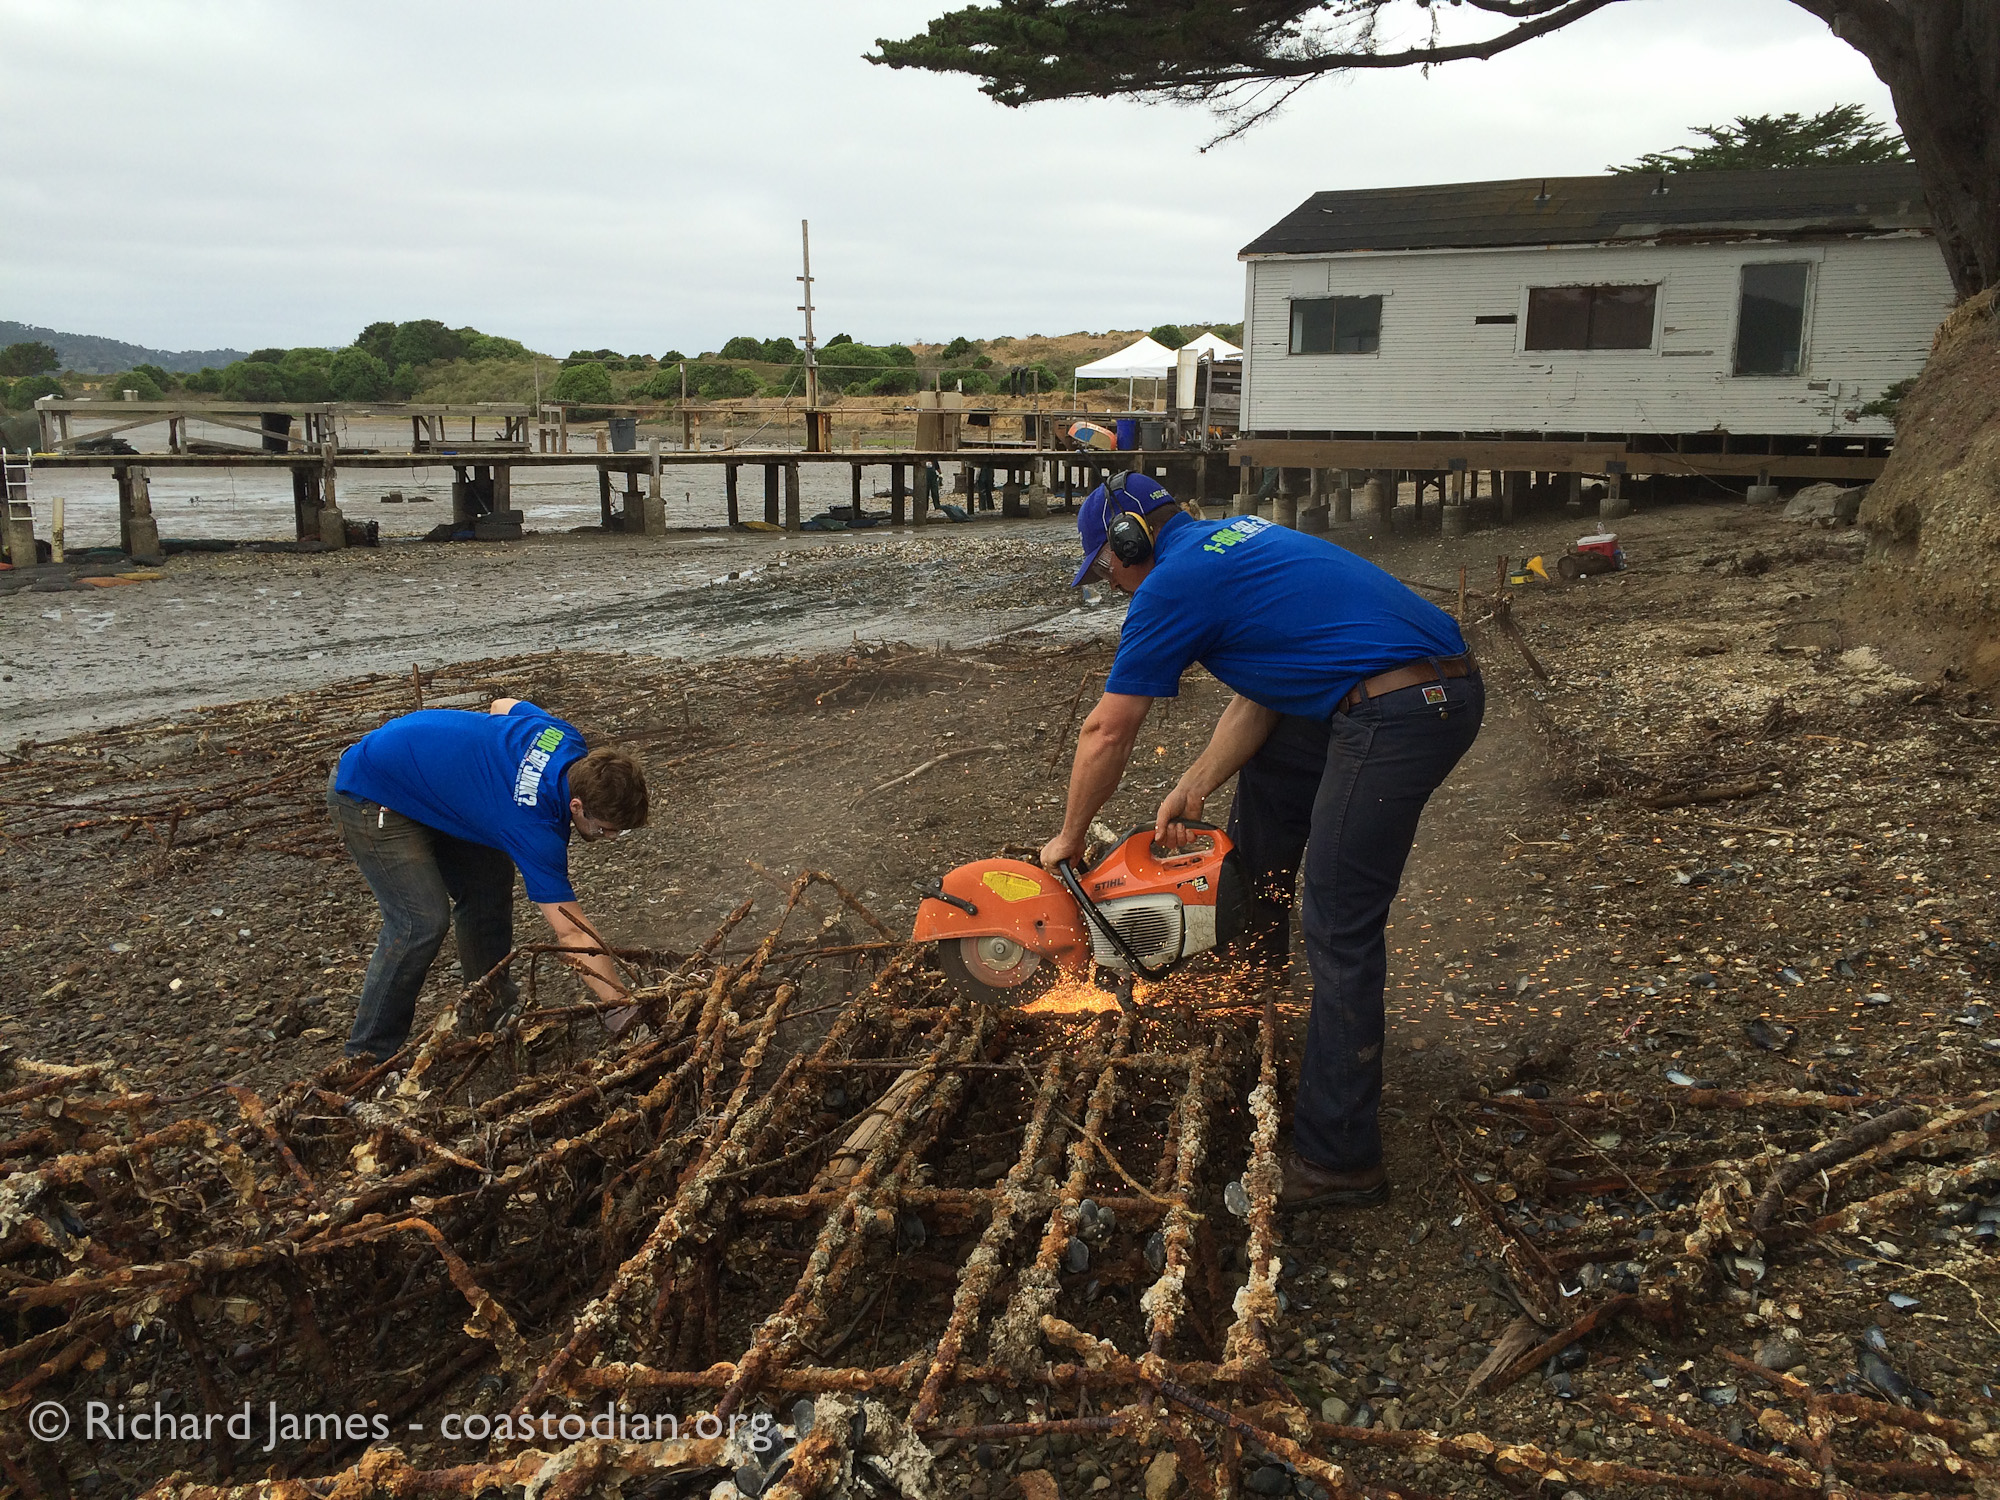 1-800-got-junk guys removing oyster farming junk from Tomales Bay.